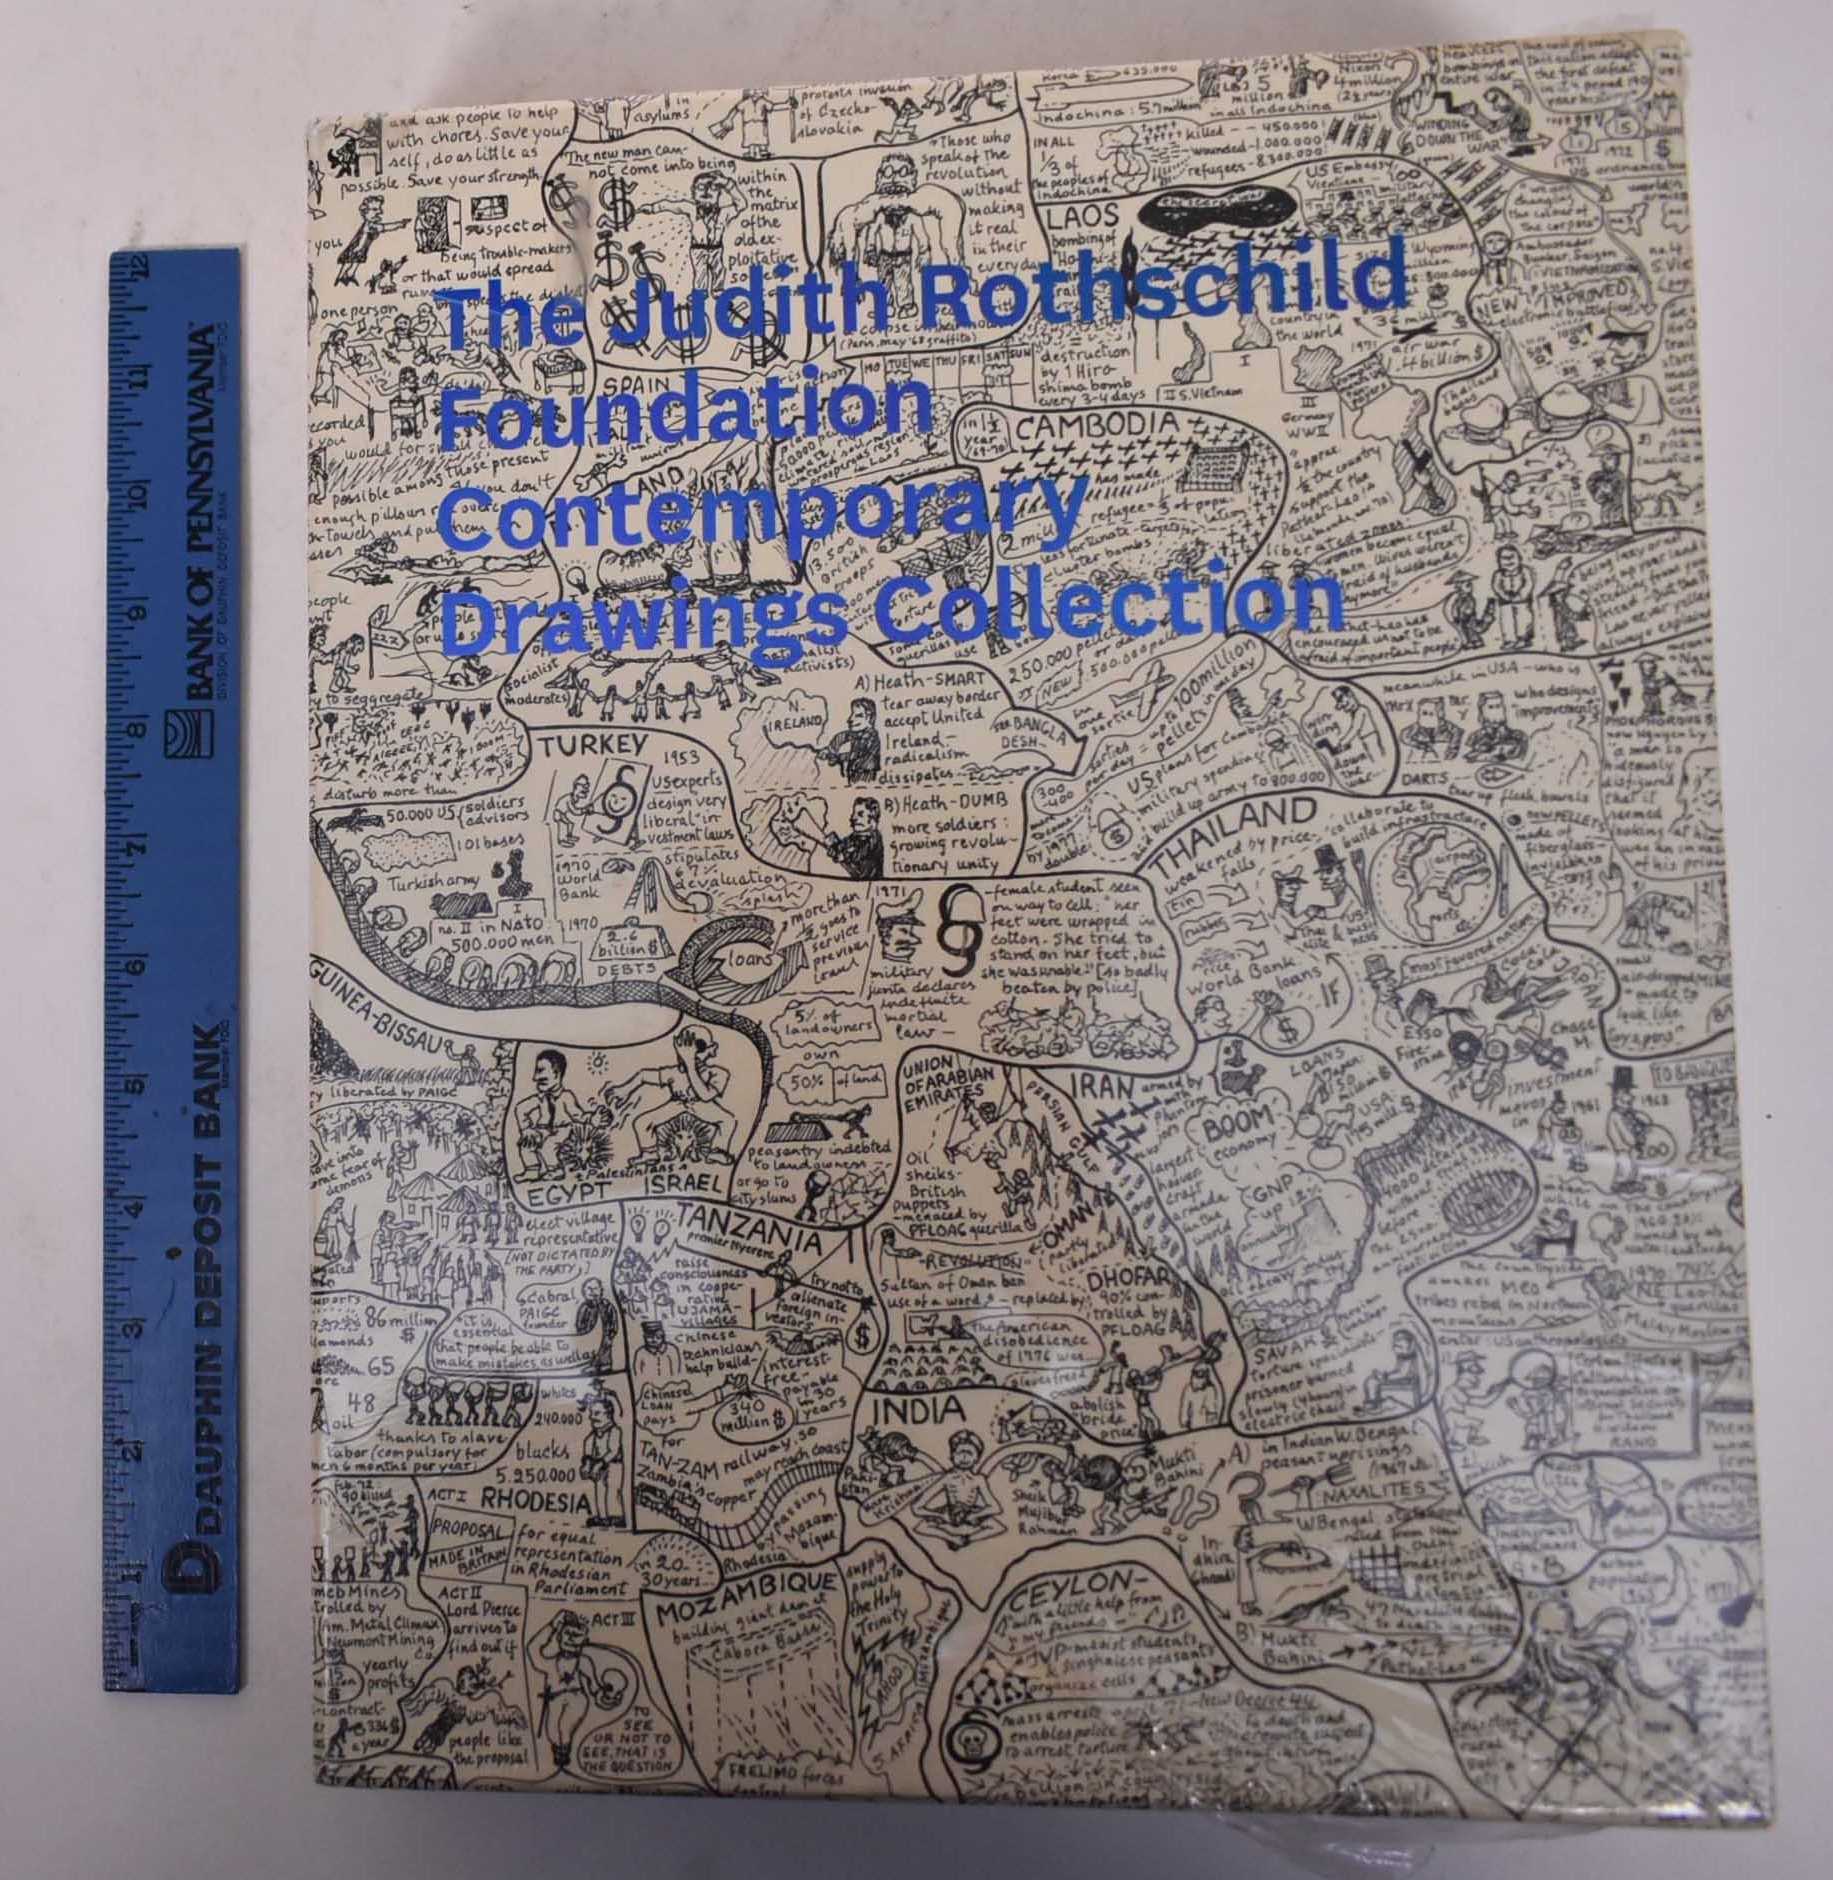 RATTEMEYER, CHRISTIAN - The Judith Rothschild Foundation Contemporary Drawings Collection (2-Volume Set in Slipcase)